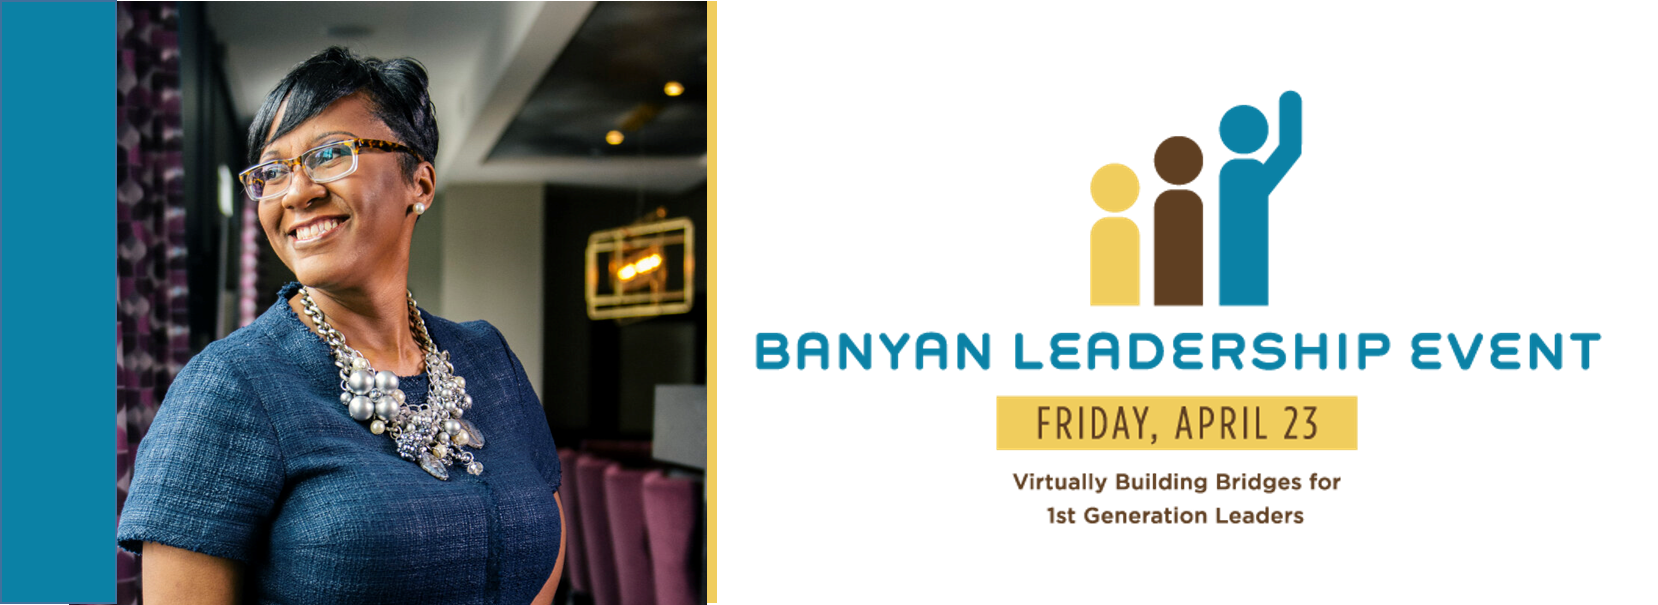 Banyan Community Leadership Event